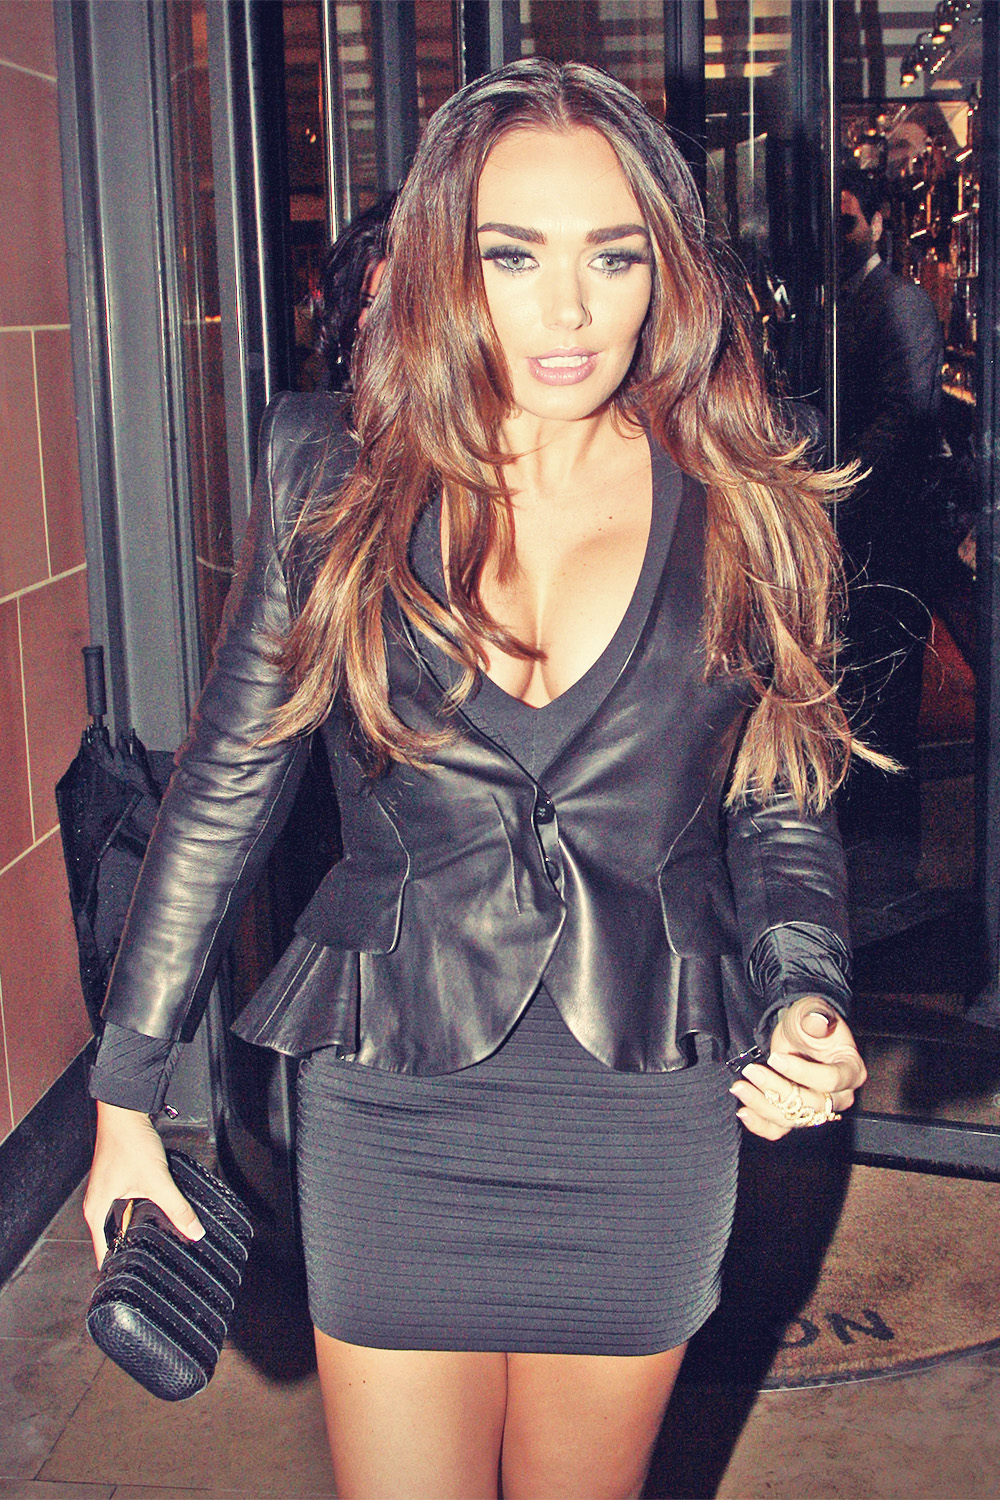 Tamara ecclestone leather pants tamara ecclestone leather dress tamara -  Tamara Ecclestone Blc Club